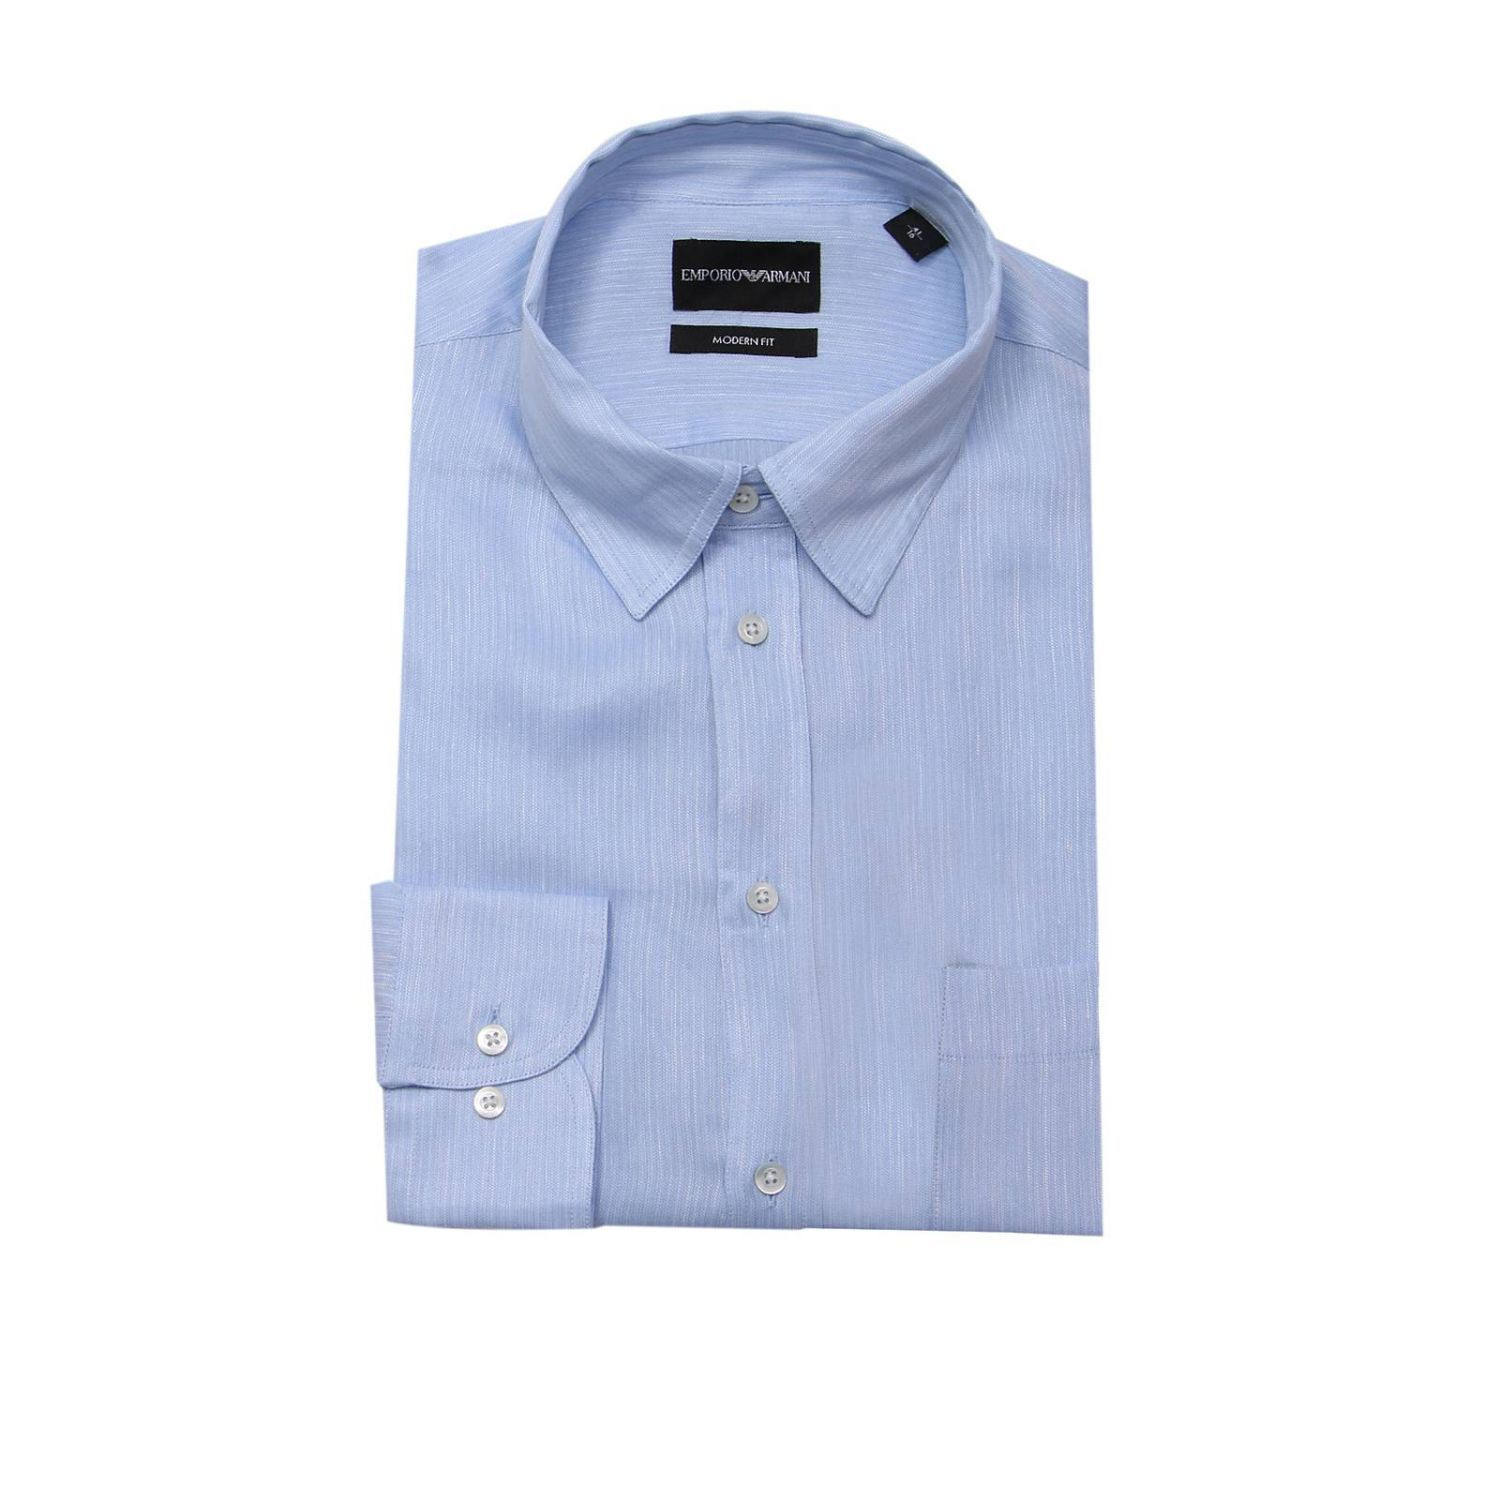 Shirt men Emporio Armani gnawed blue 1